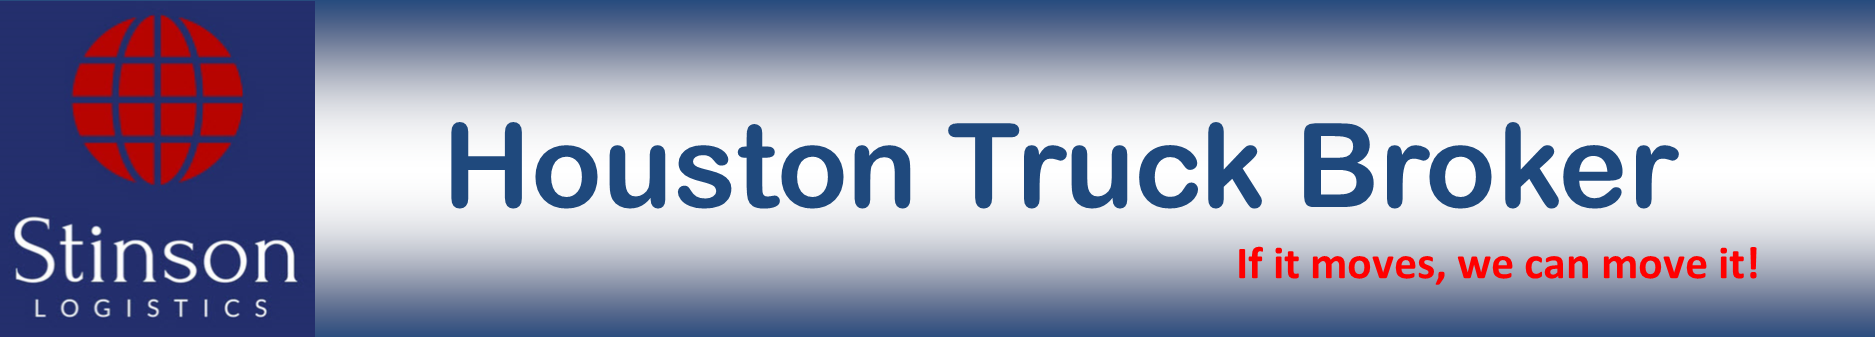 Houston Truck Broker - Stinson Logistics, LLC - Domestic Trucking